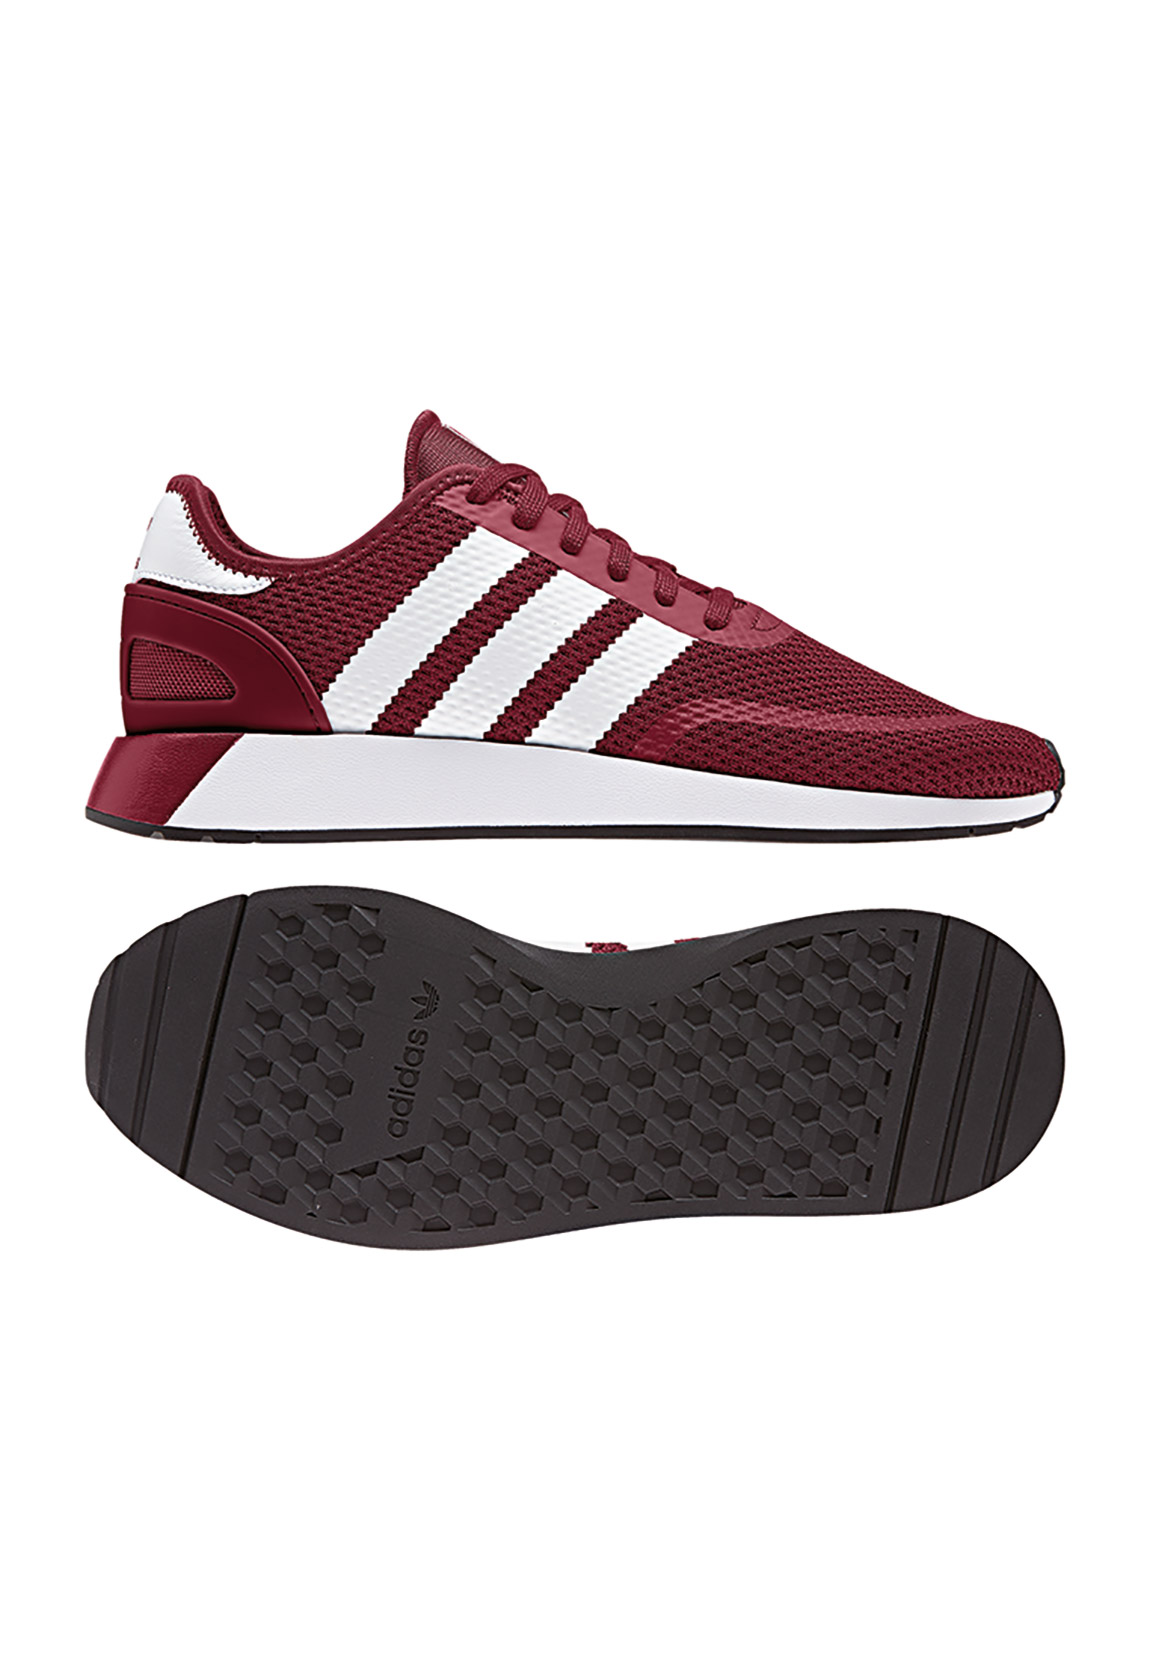 Adidas Originals N 5923 Trainers In Red B37958 for men